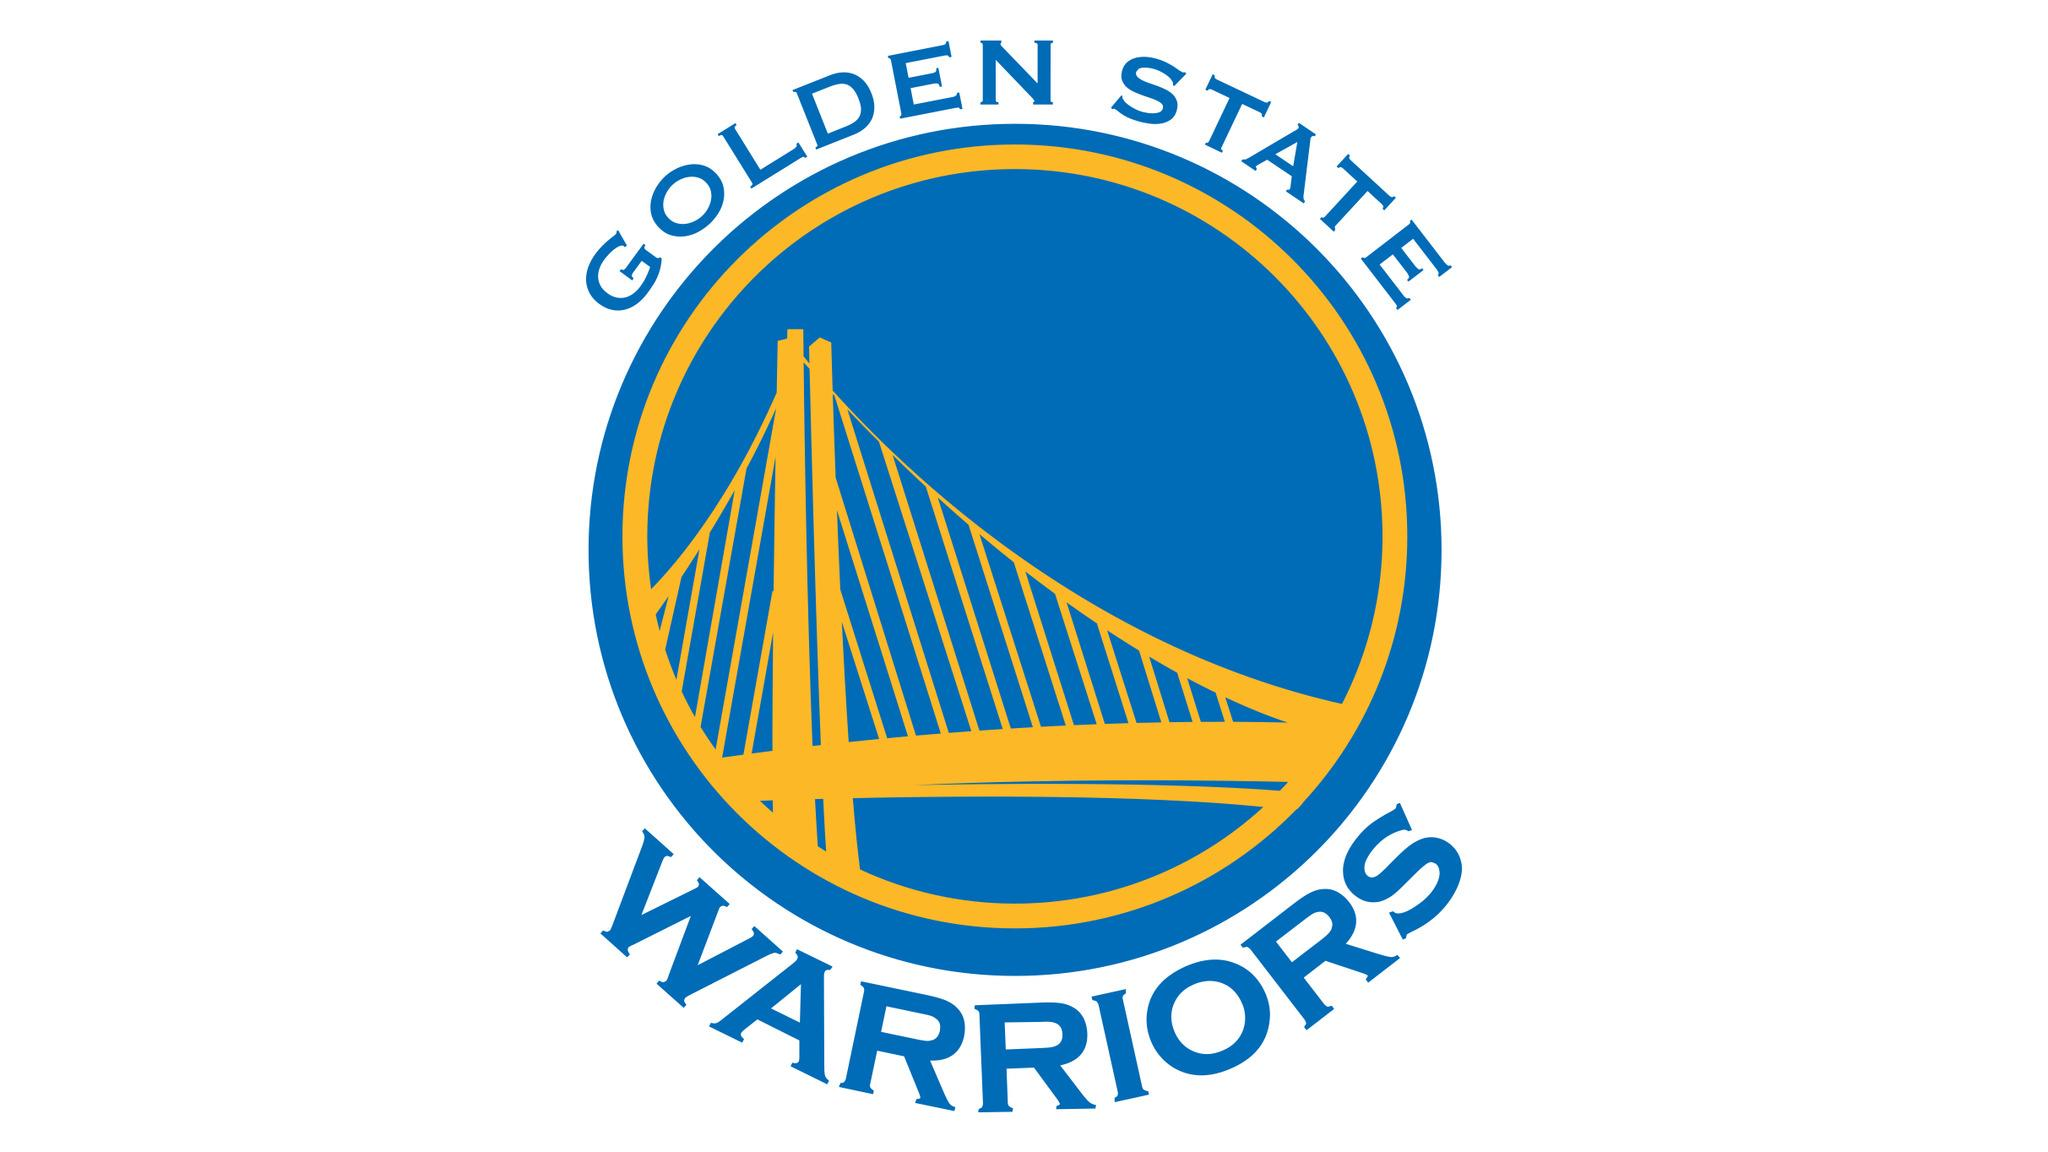 Golden State Warriors vs. Memphis Grizzlies - Oakland, CA 94621